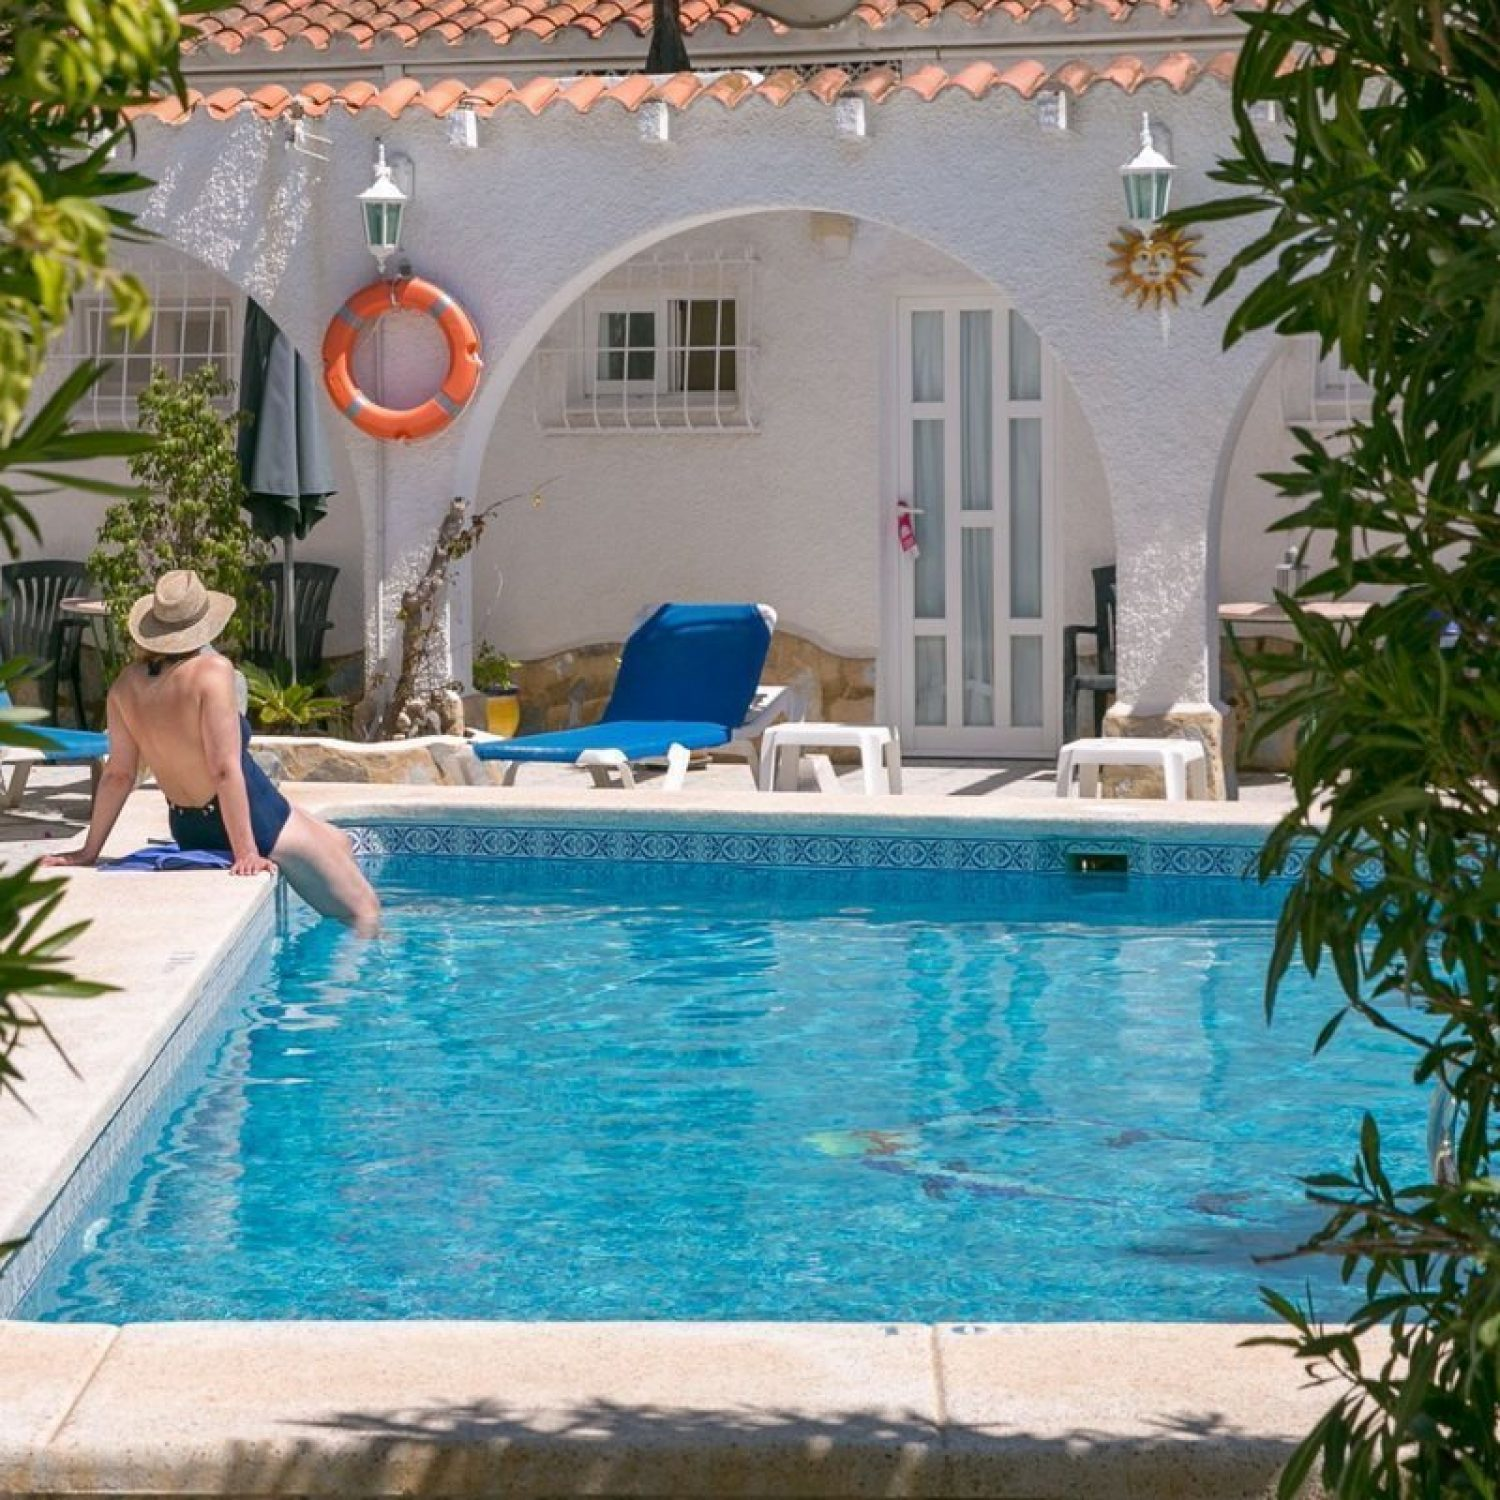 A lady enjoying the magnesium pool at La Crisalida Retreats, health and wellbeing retreat, Spain, to cleanse the skin